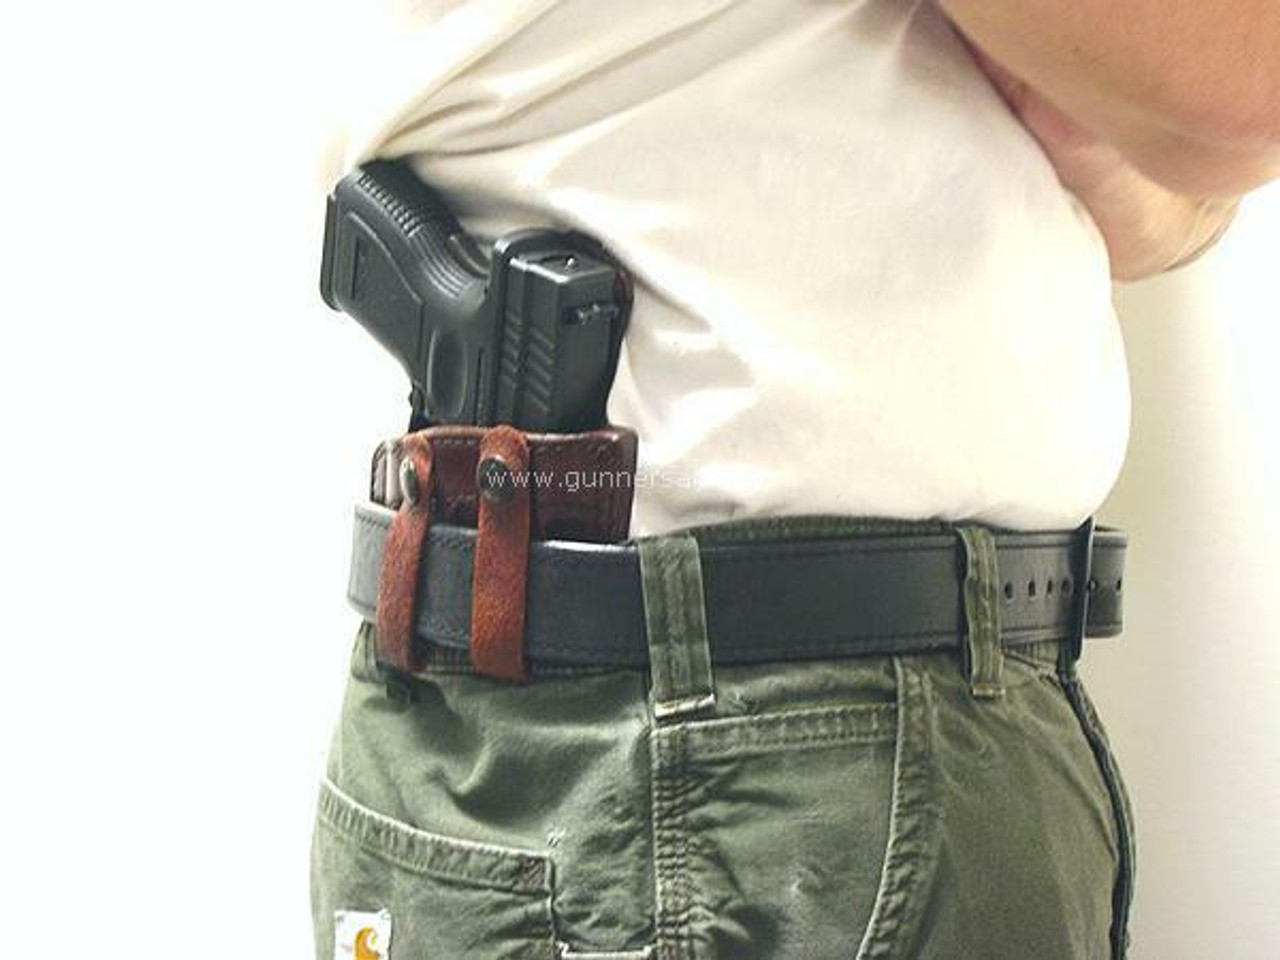 Shown on the Belt with a Springfield XD SubCompact 9mm for Demonstration Purposes